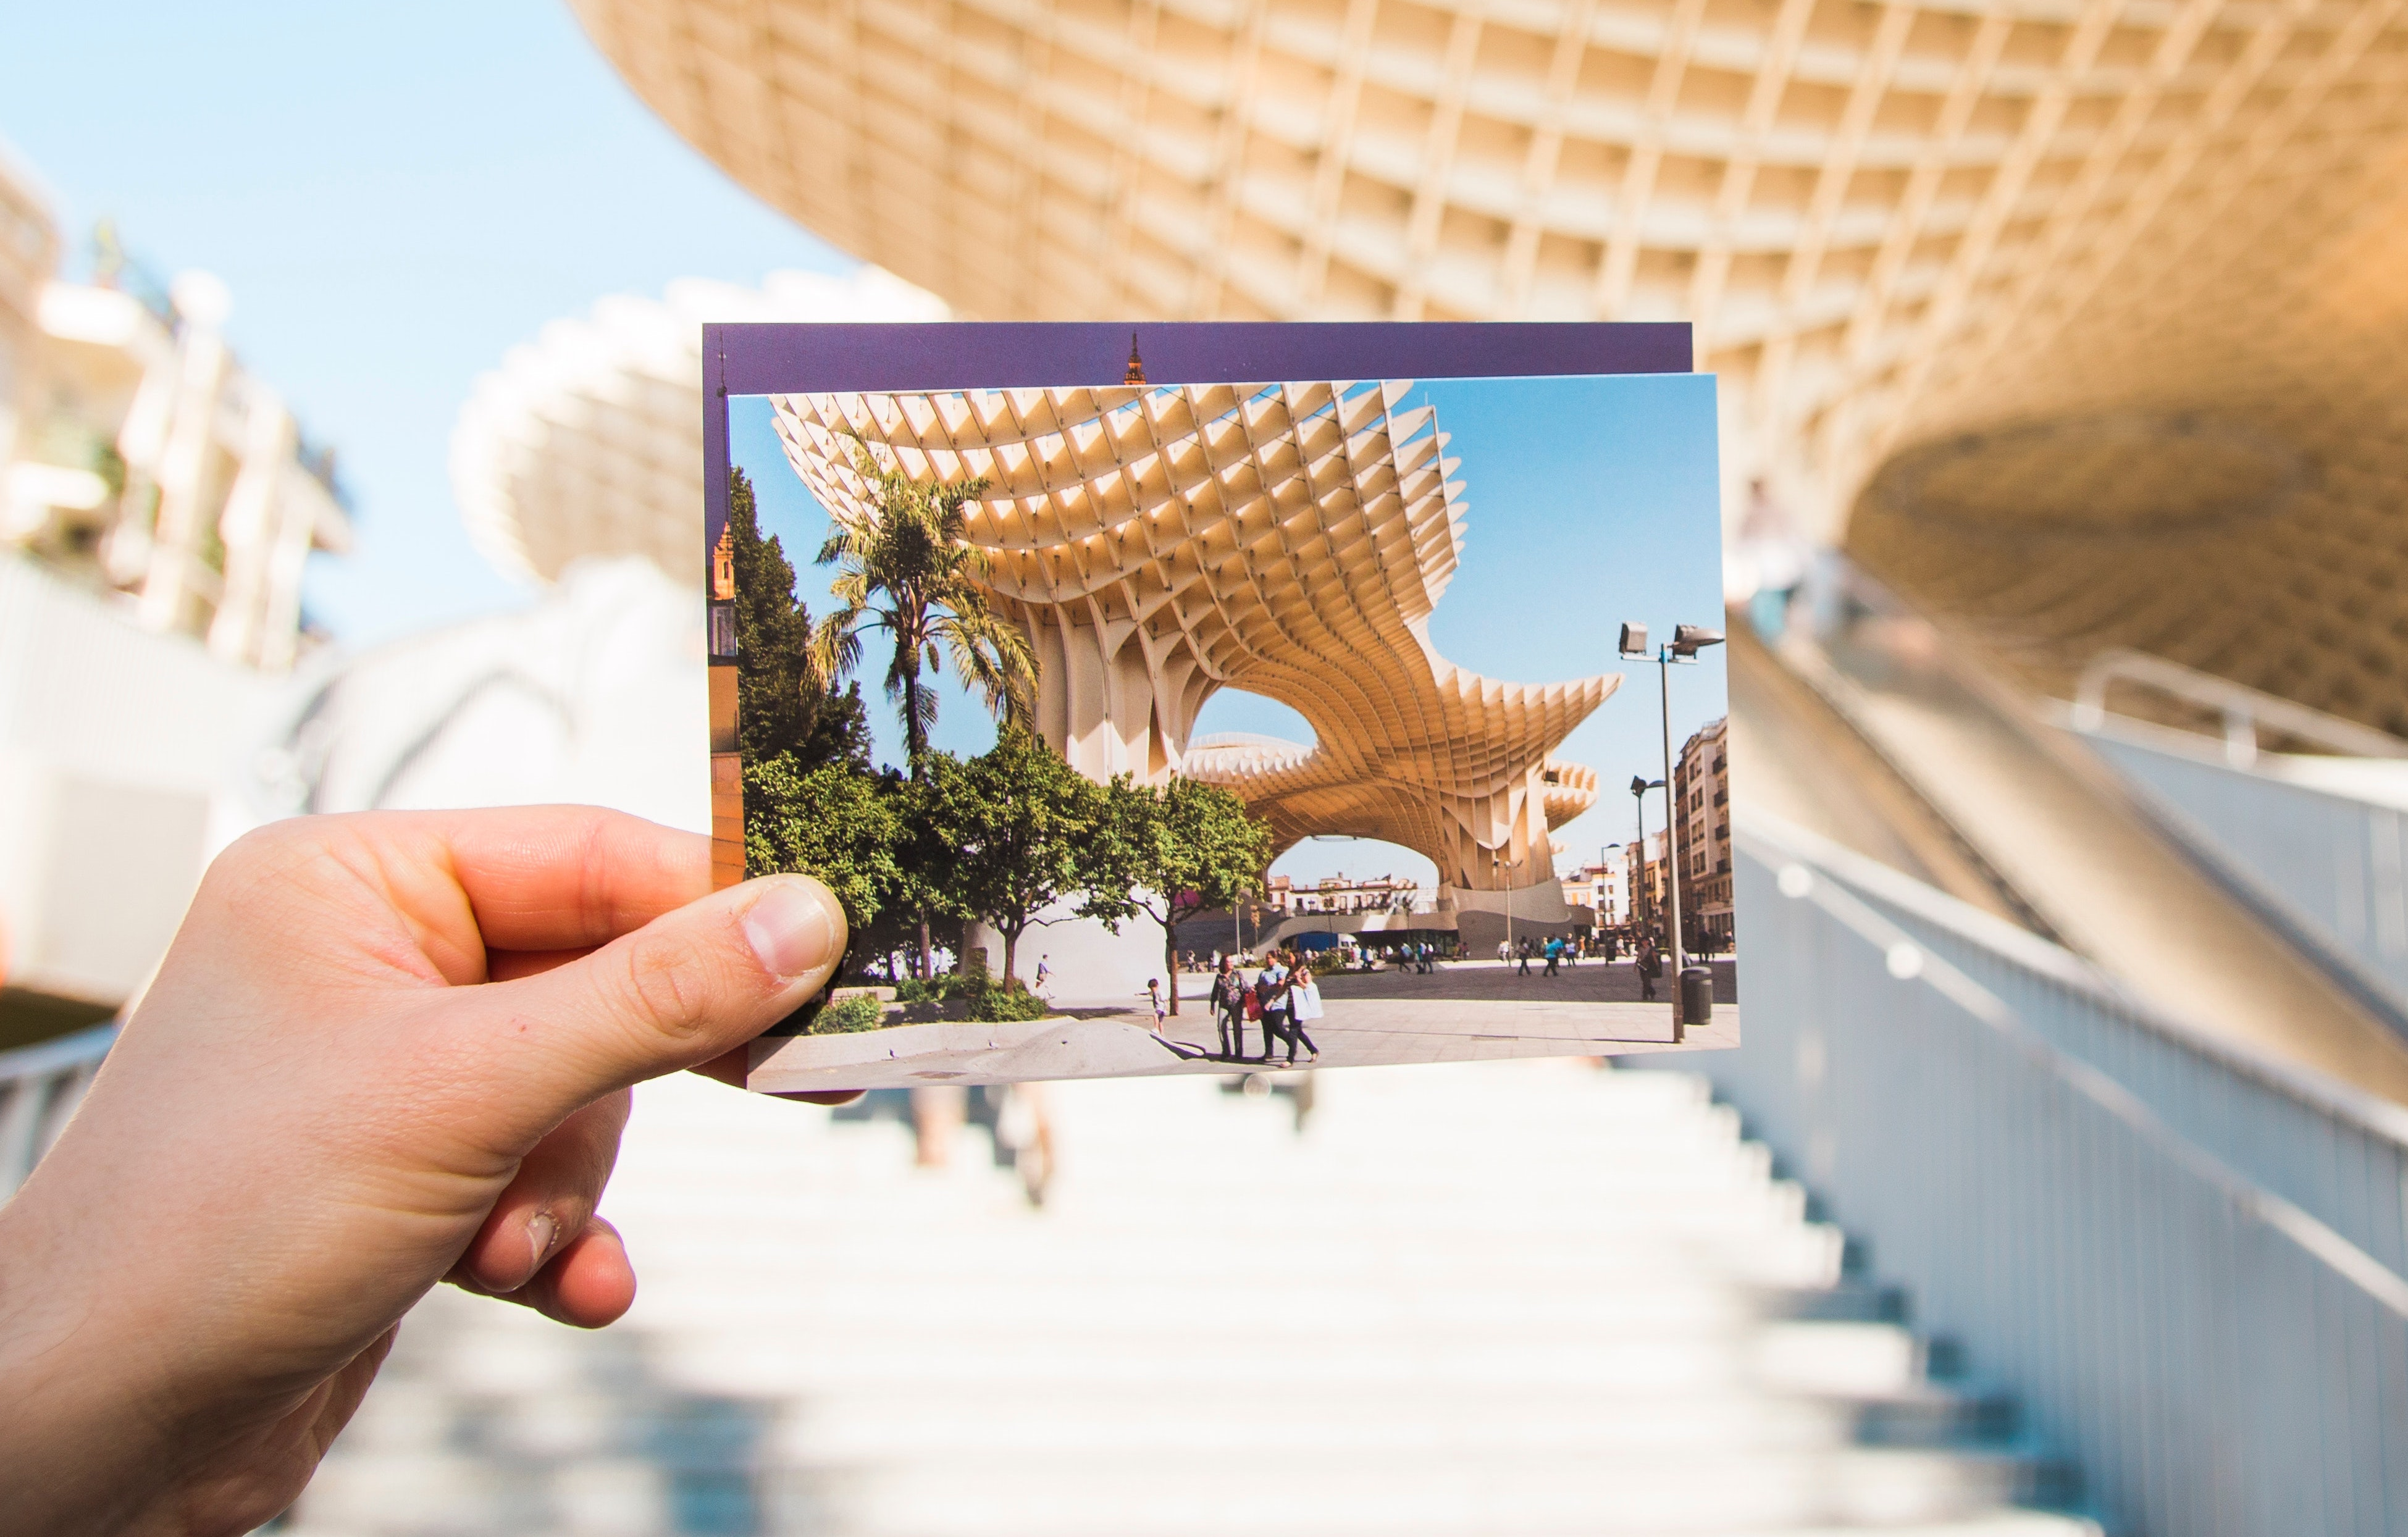 Postcard With a Photo That Represents a Meaningful Place